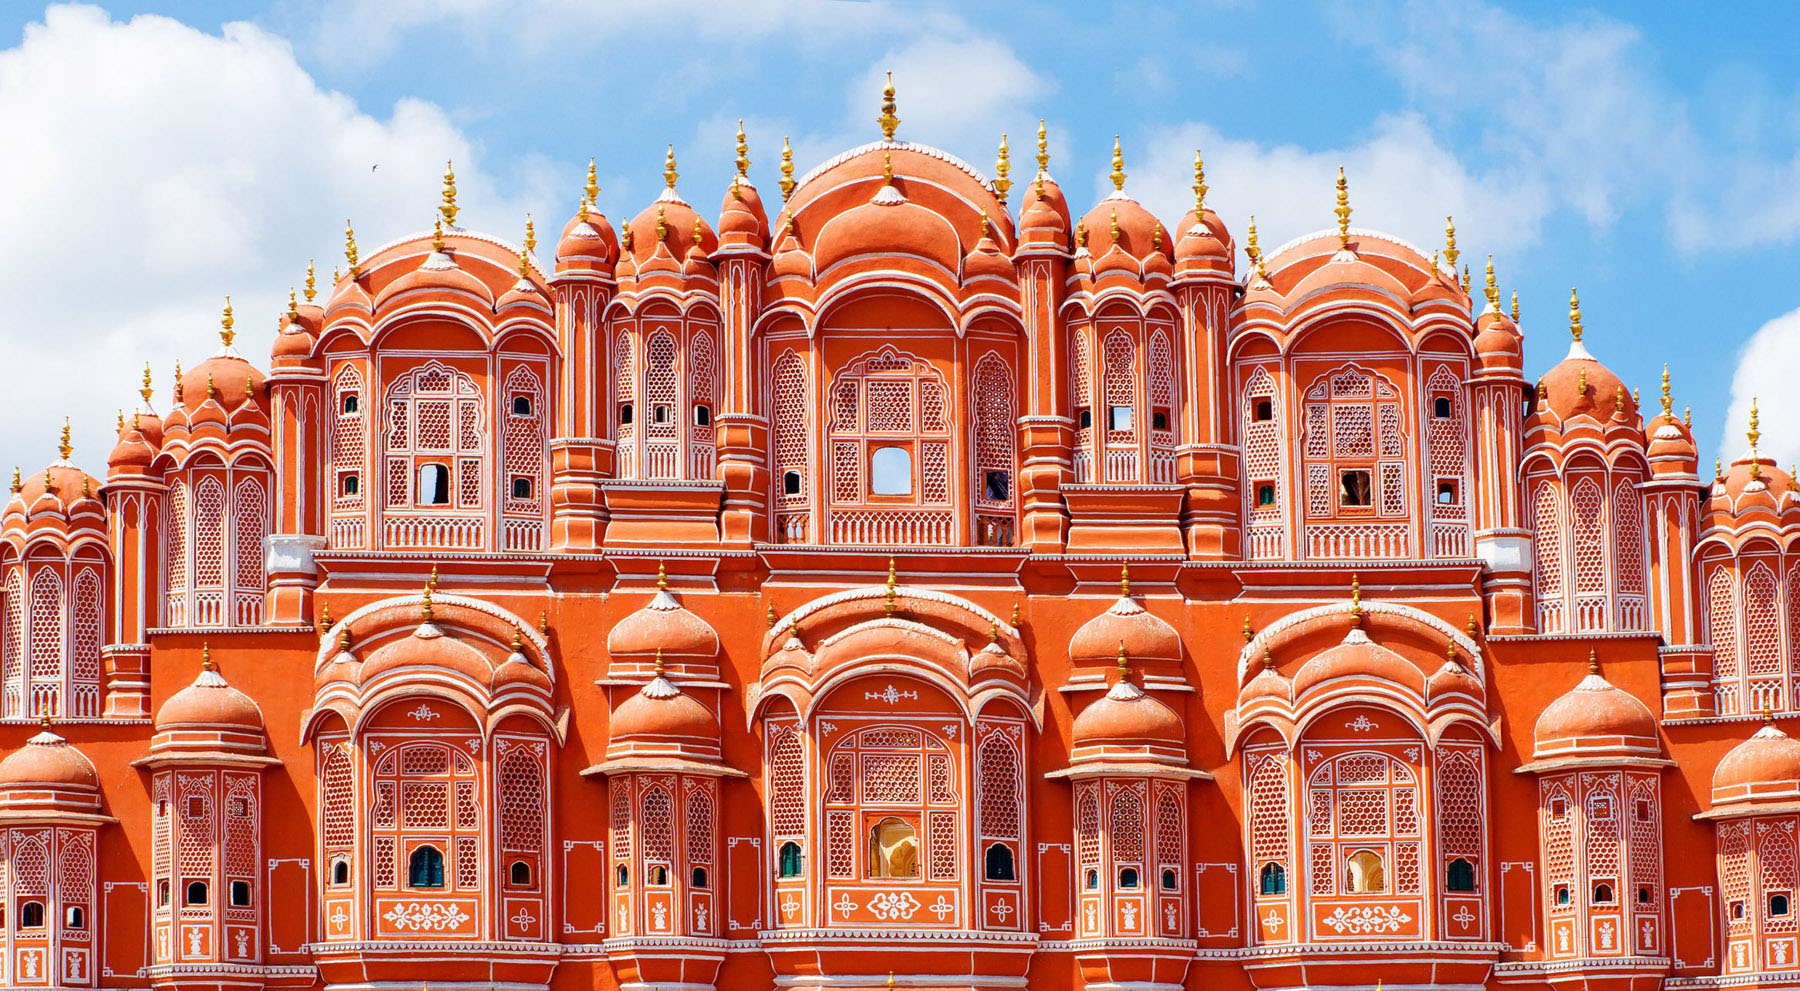 Hawa Mahal palace (Palace of the Winds) in Jaipur, Rajasthan. India